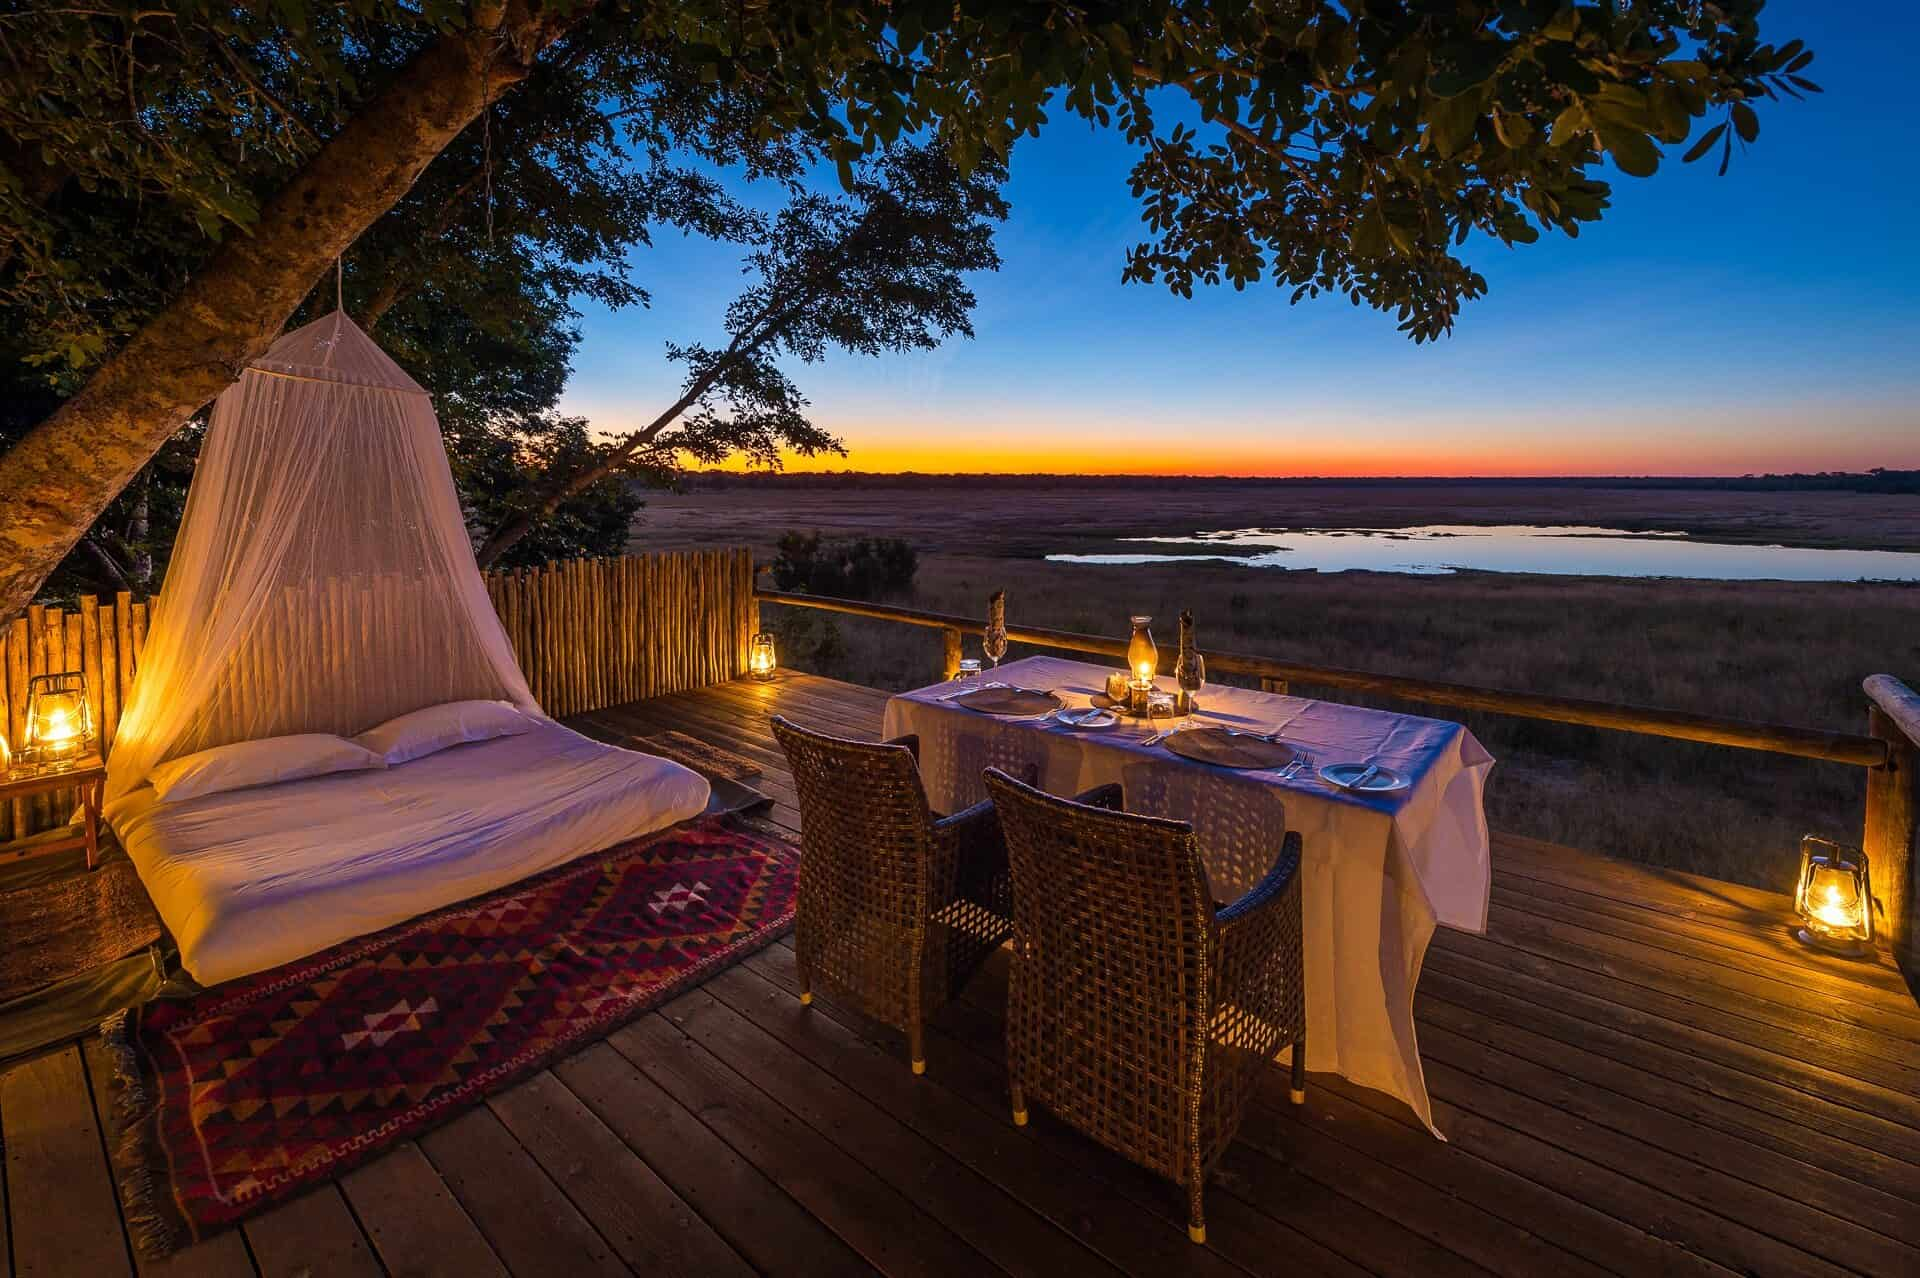 Tailormade-safaris-little-makalolo-star-bed-hwnage-zimbabwe